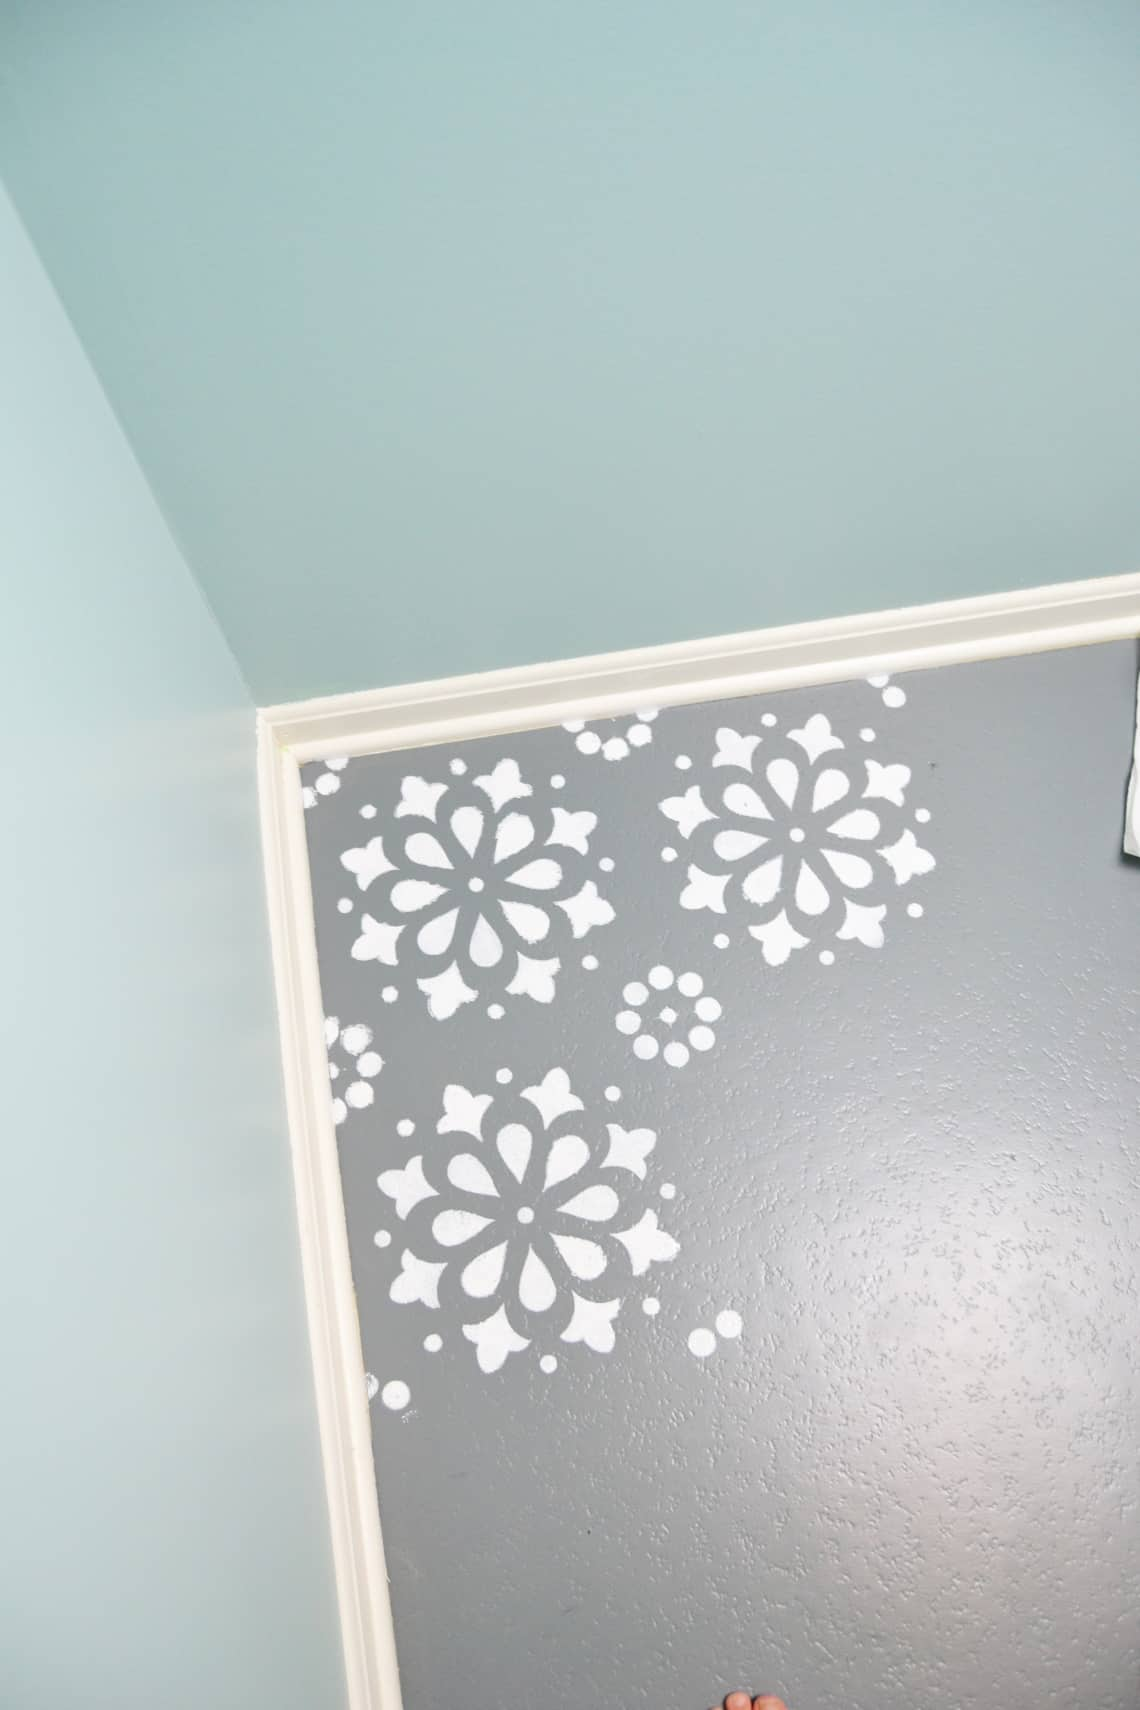 the partially stenciled pattern on the floor